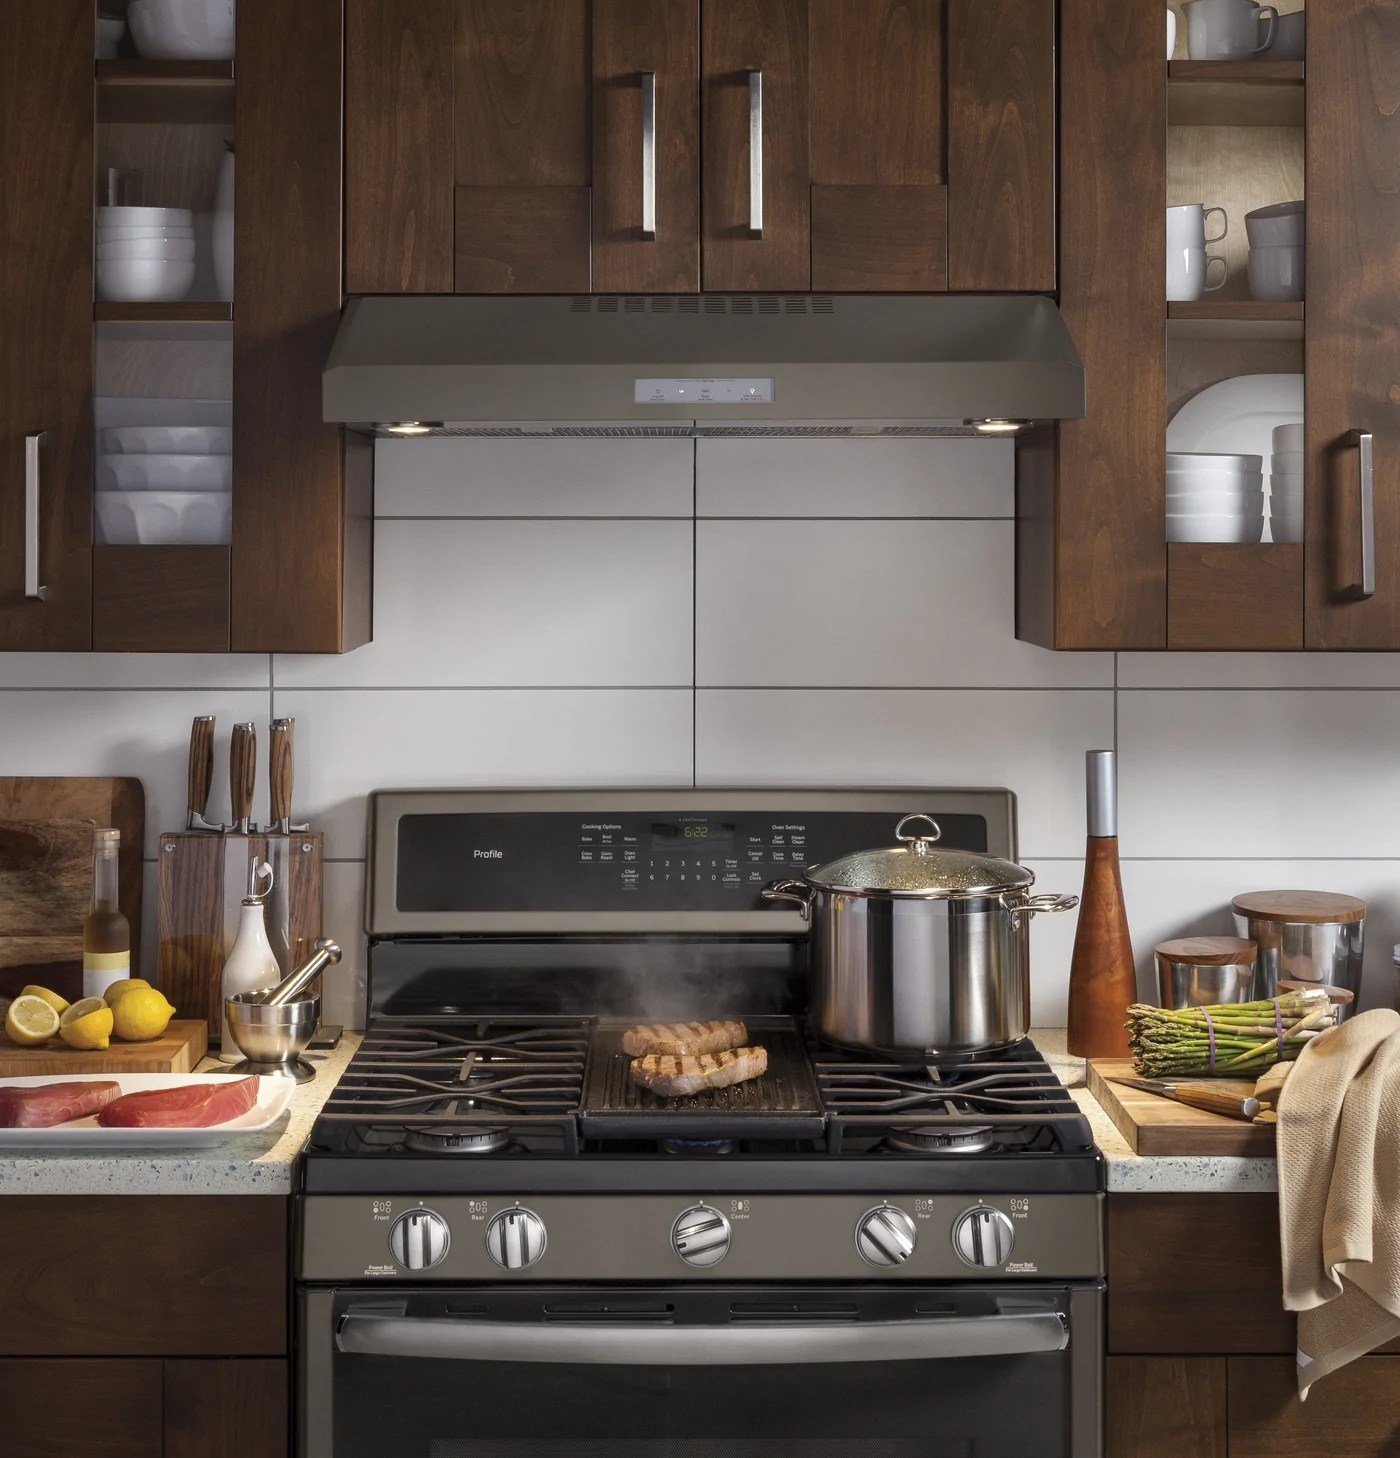 ge profile slate 30 inch 4 speed under the cabinet vent hood pvx7300ejesc